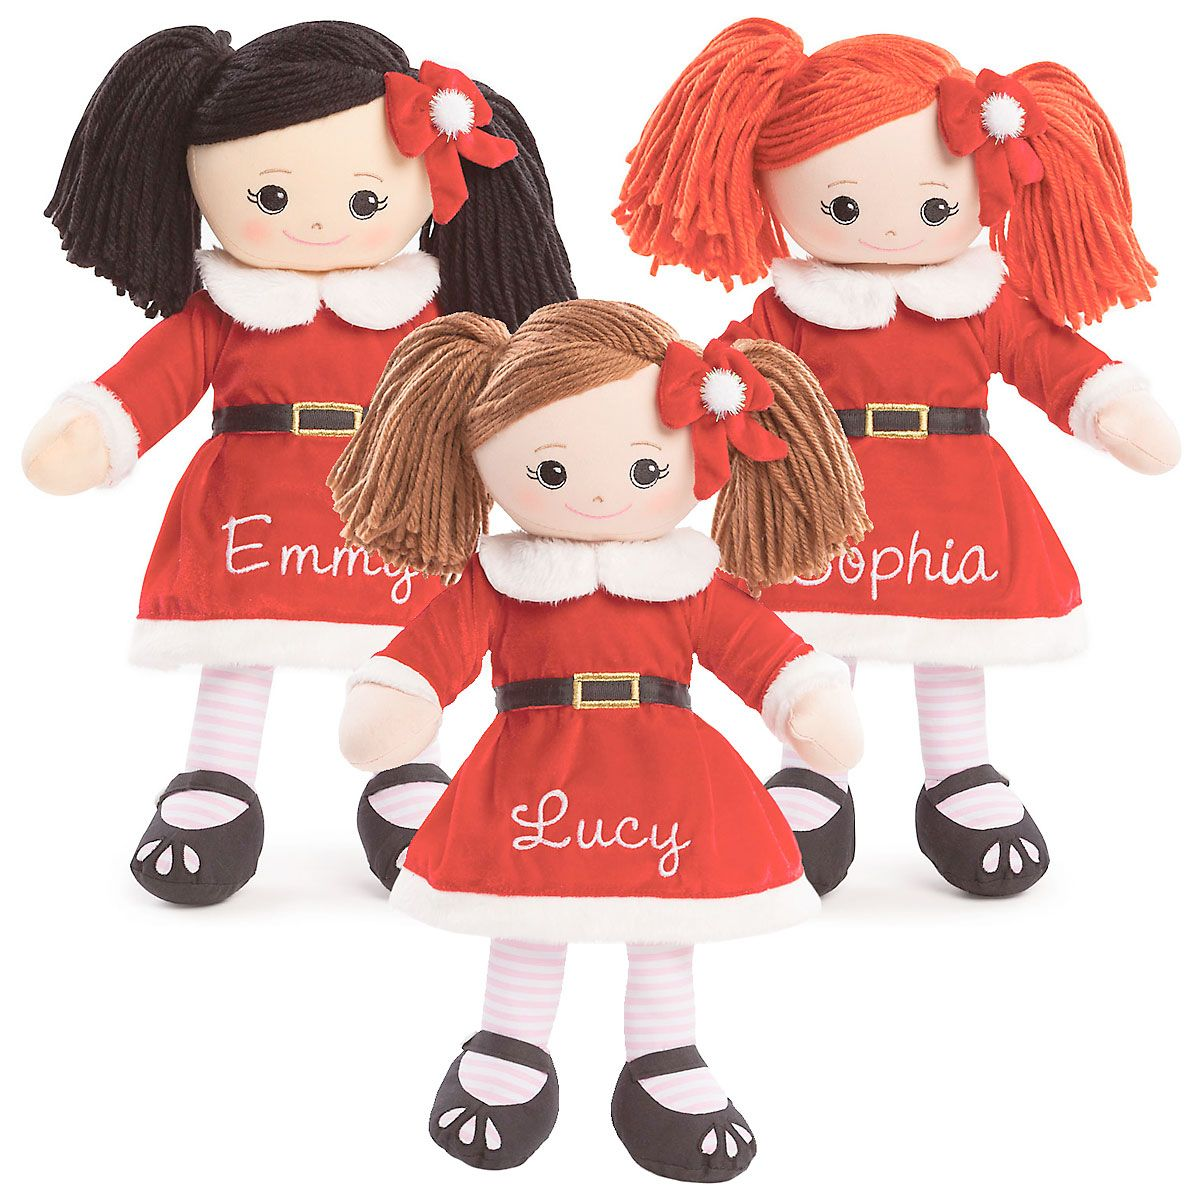 Personalized Rag Doll in Santa Dress